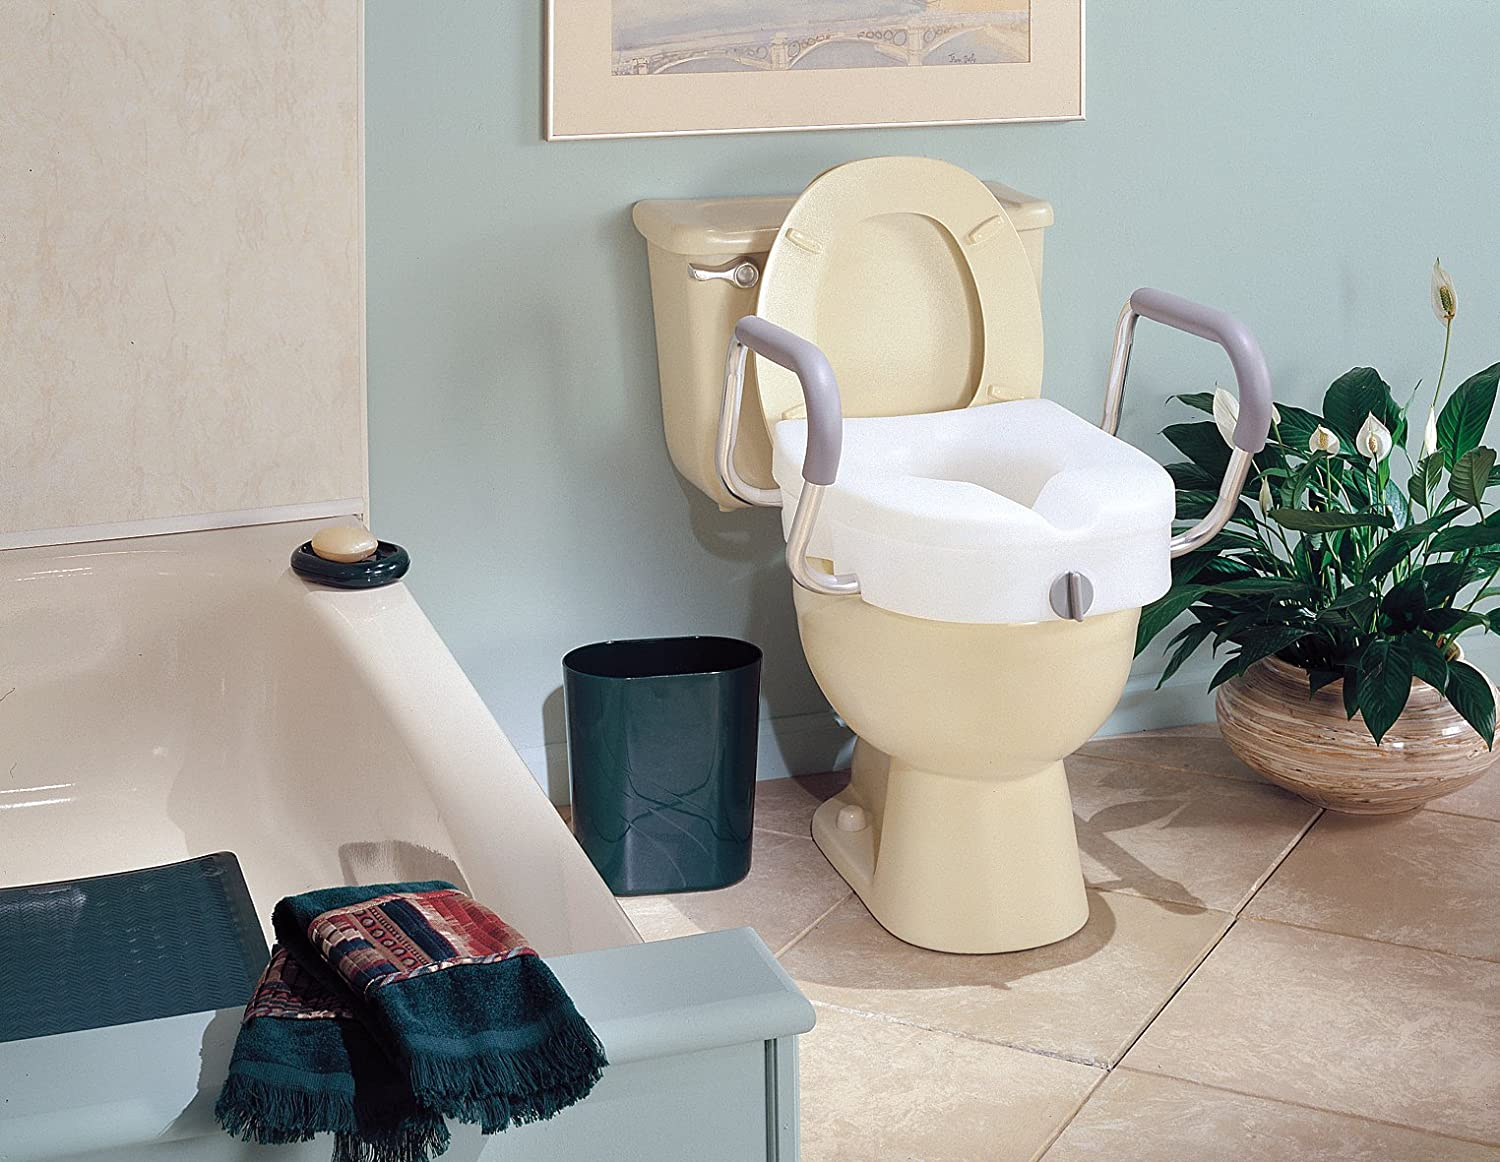 Amazon.com: Carex E-Z Lock Raised Toilet Seat with Armrests, Adds ...